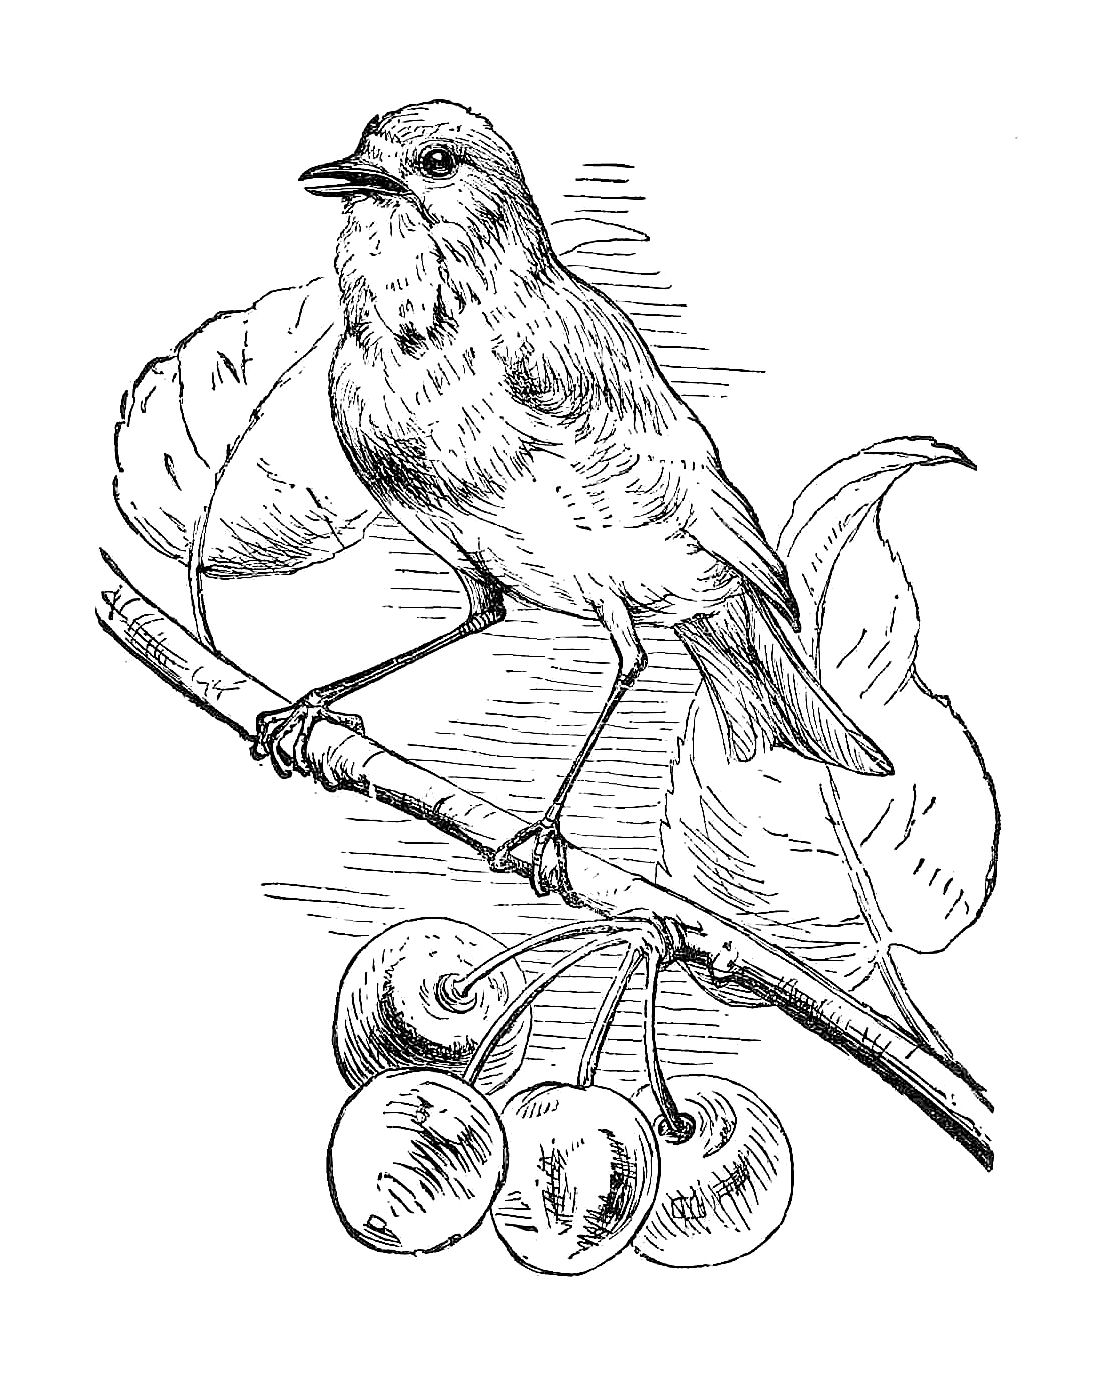 Free Black And White Illustration  Bird Clip Art From Victorian